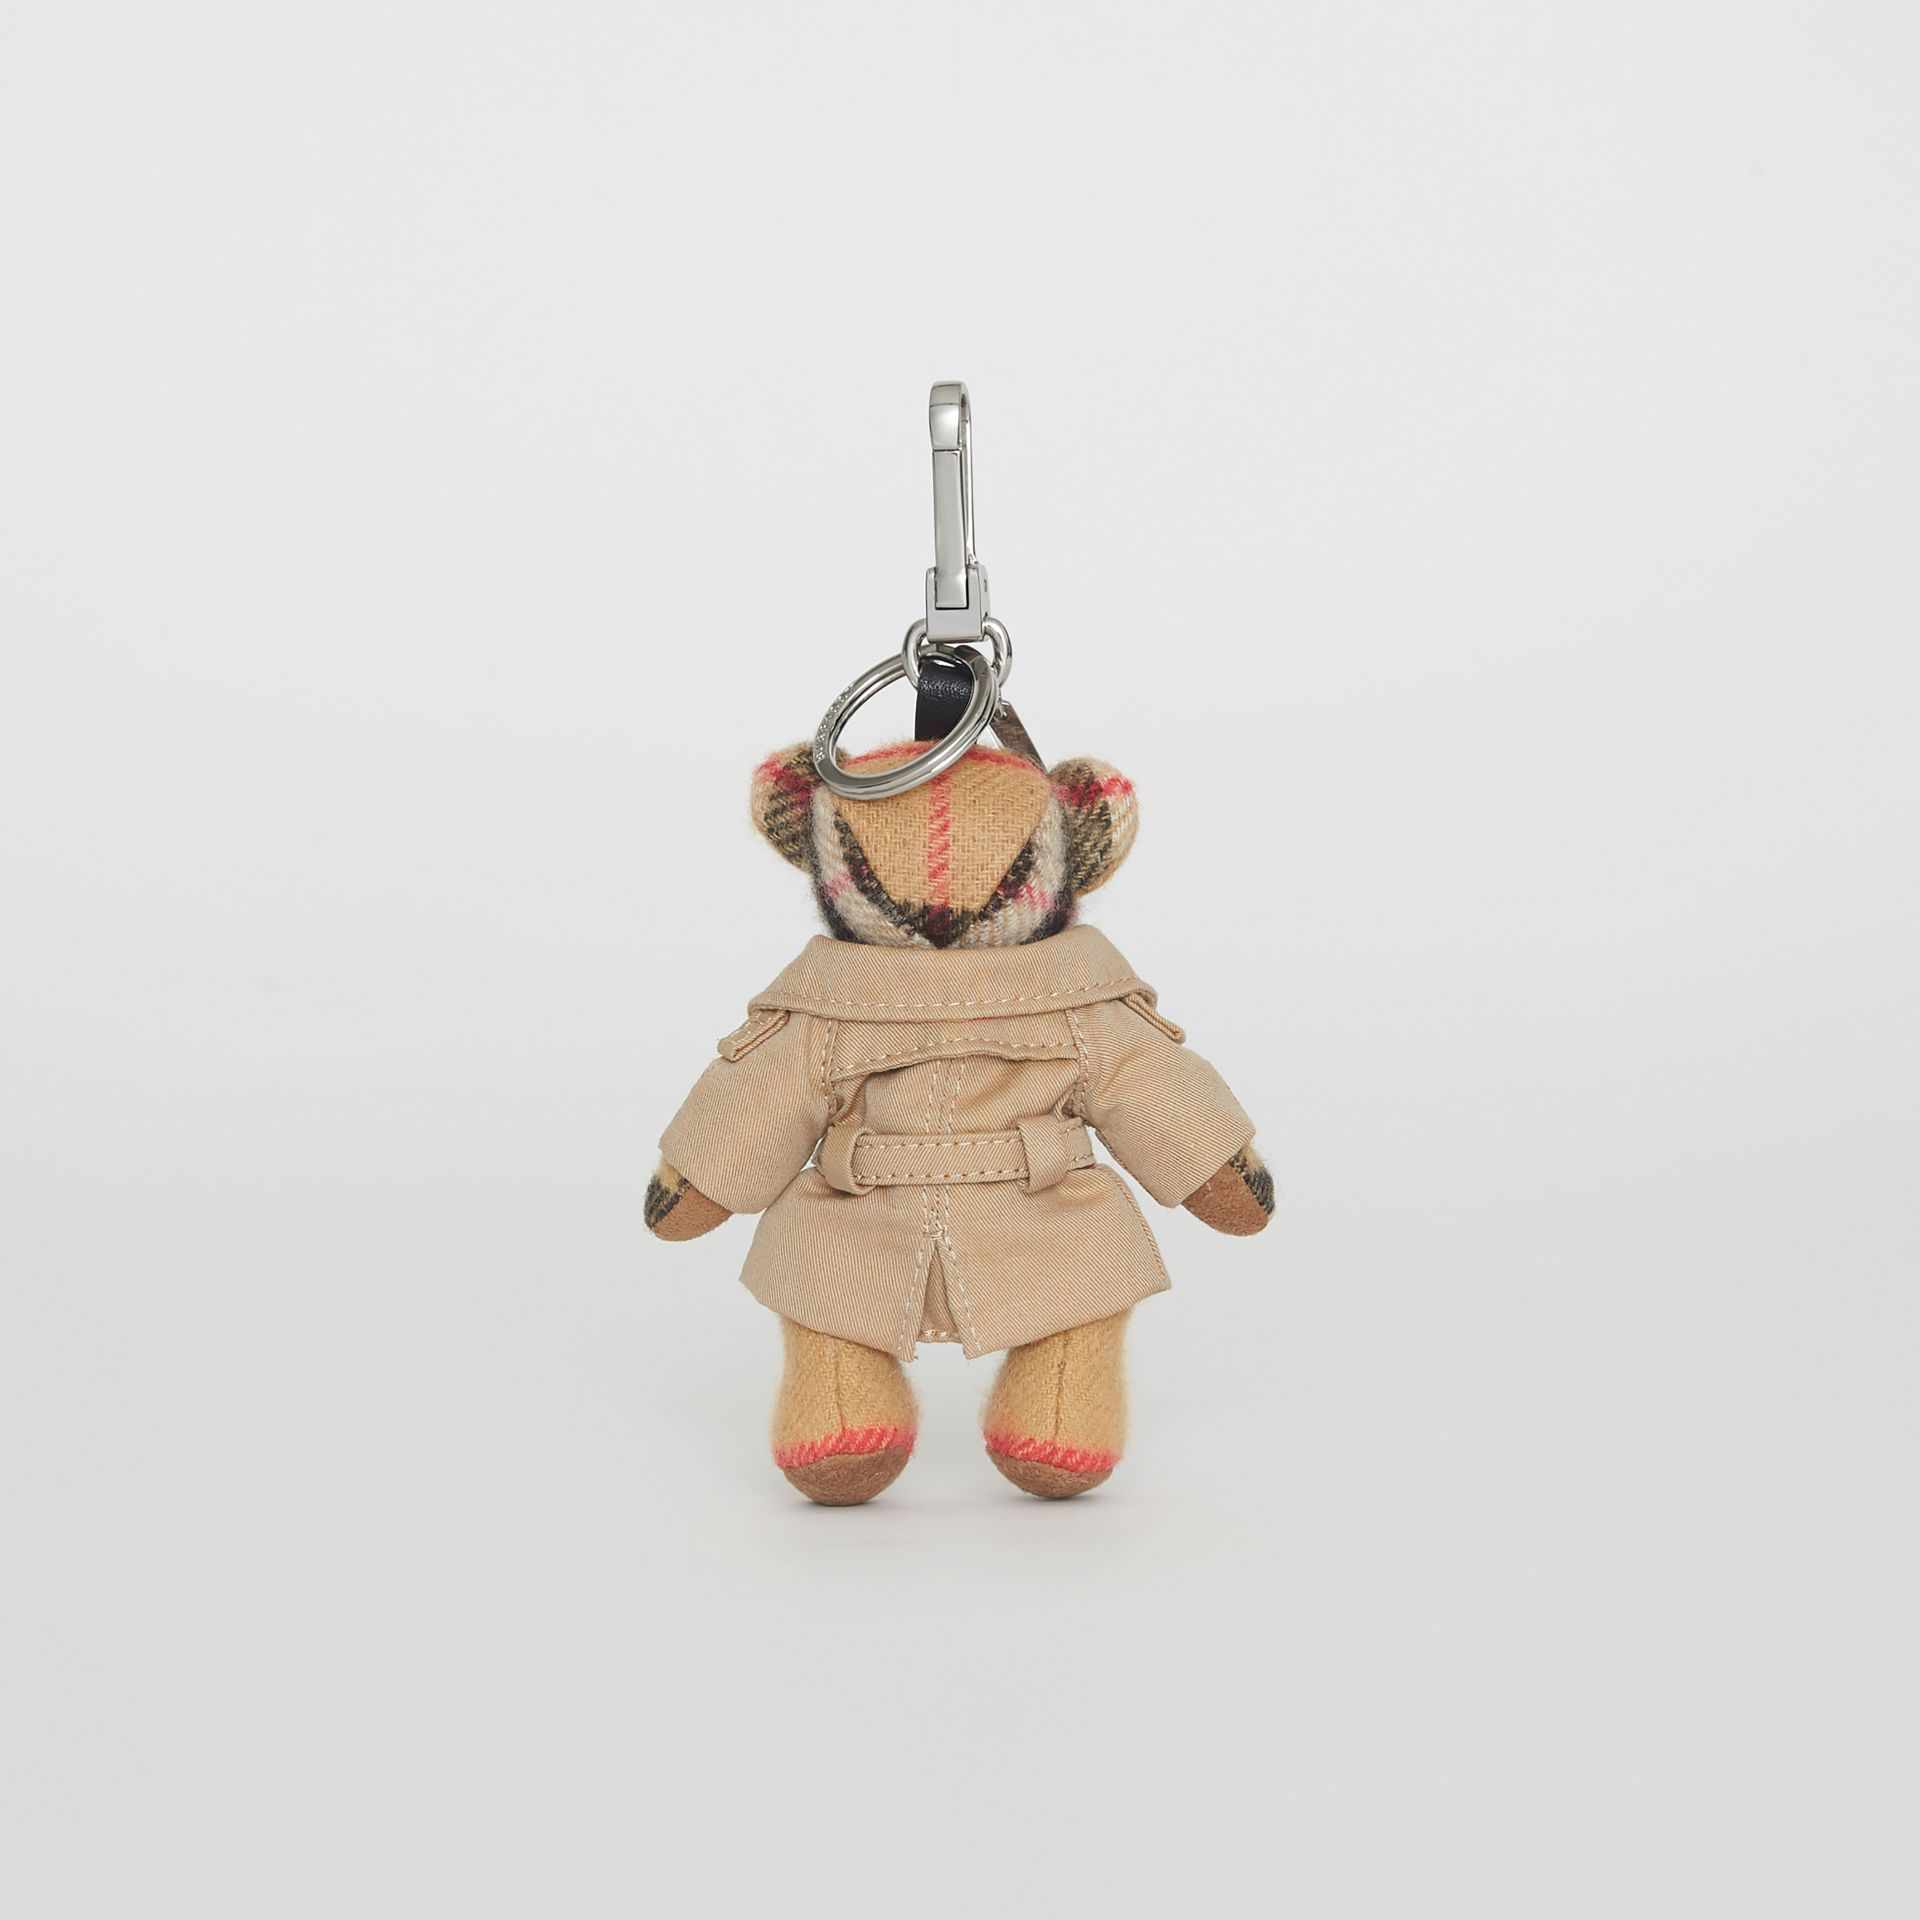 Bijou porte-clés Thomas Bear avec trench (Jaune Antique) | Burberry - photo de la galerie 4